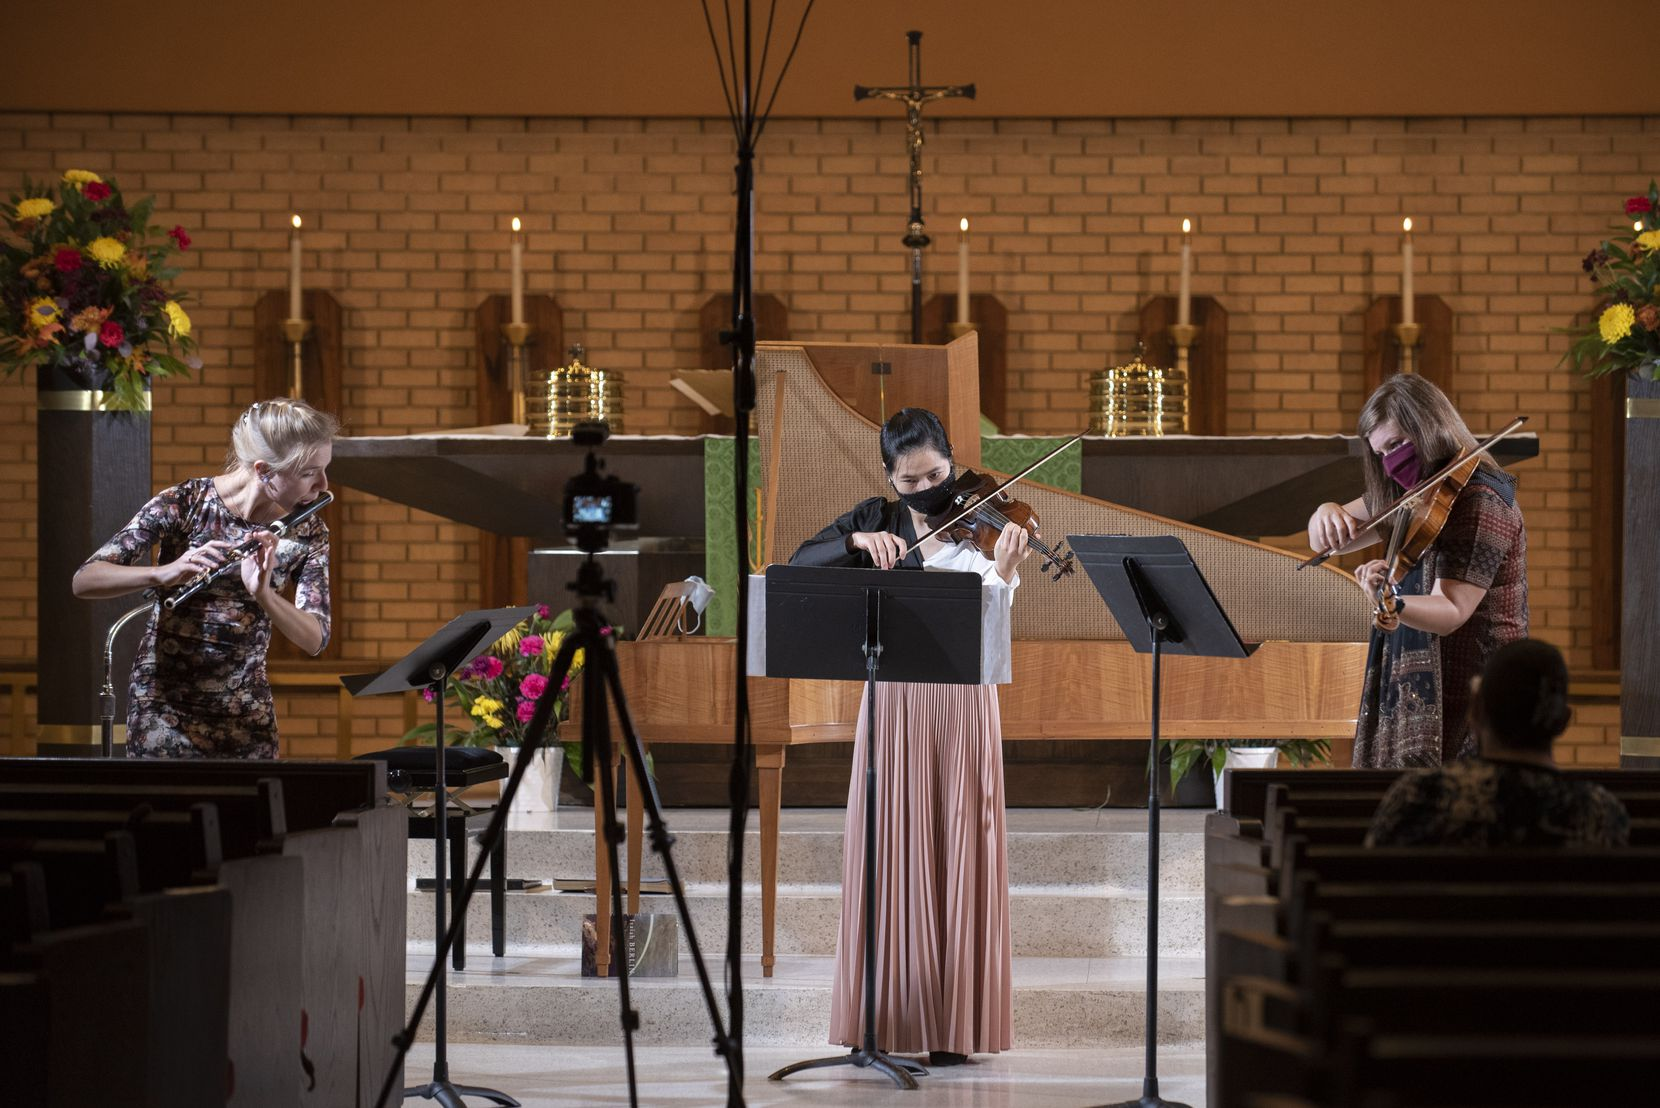 Flutist Taya König-Tarasevichn, violinists Ha Viet Dang (center) and Stephanie Noori perform Beethoven's Serenade for Flute, Violin and Viola, Opus 25, for the Dallas Bach Society at the Zion Lutheran Church in Dallas.